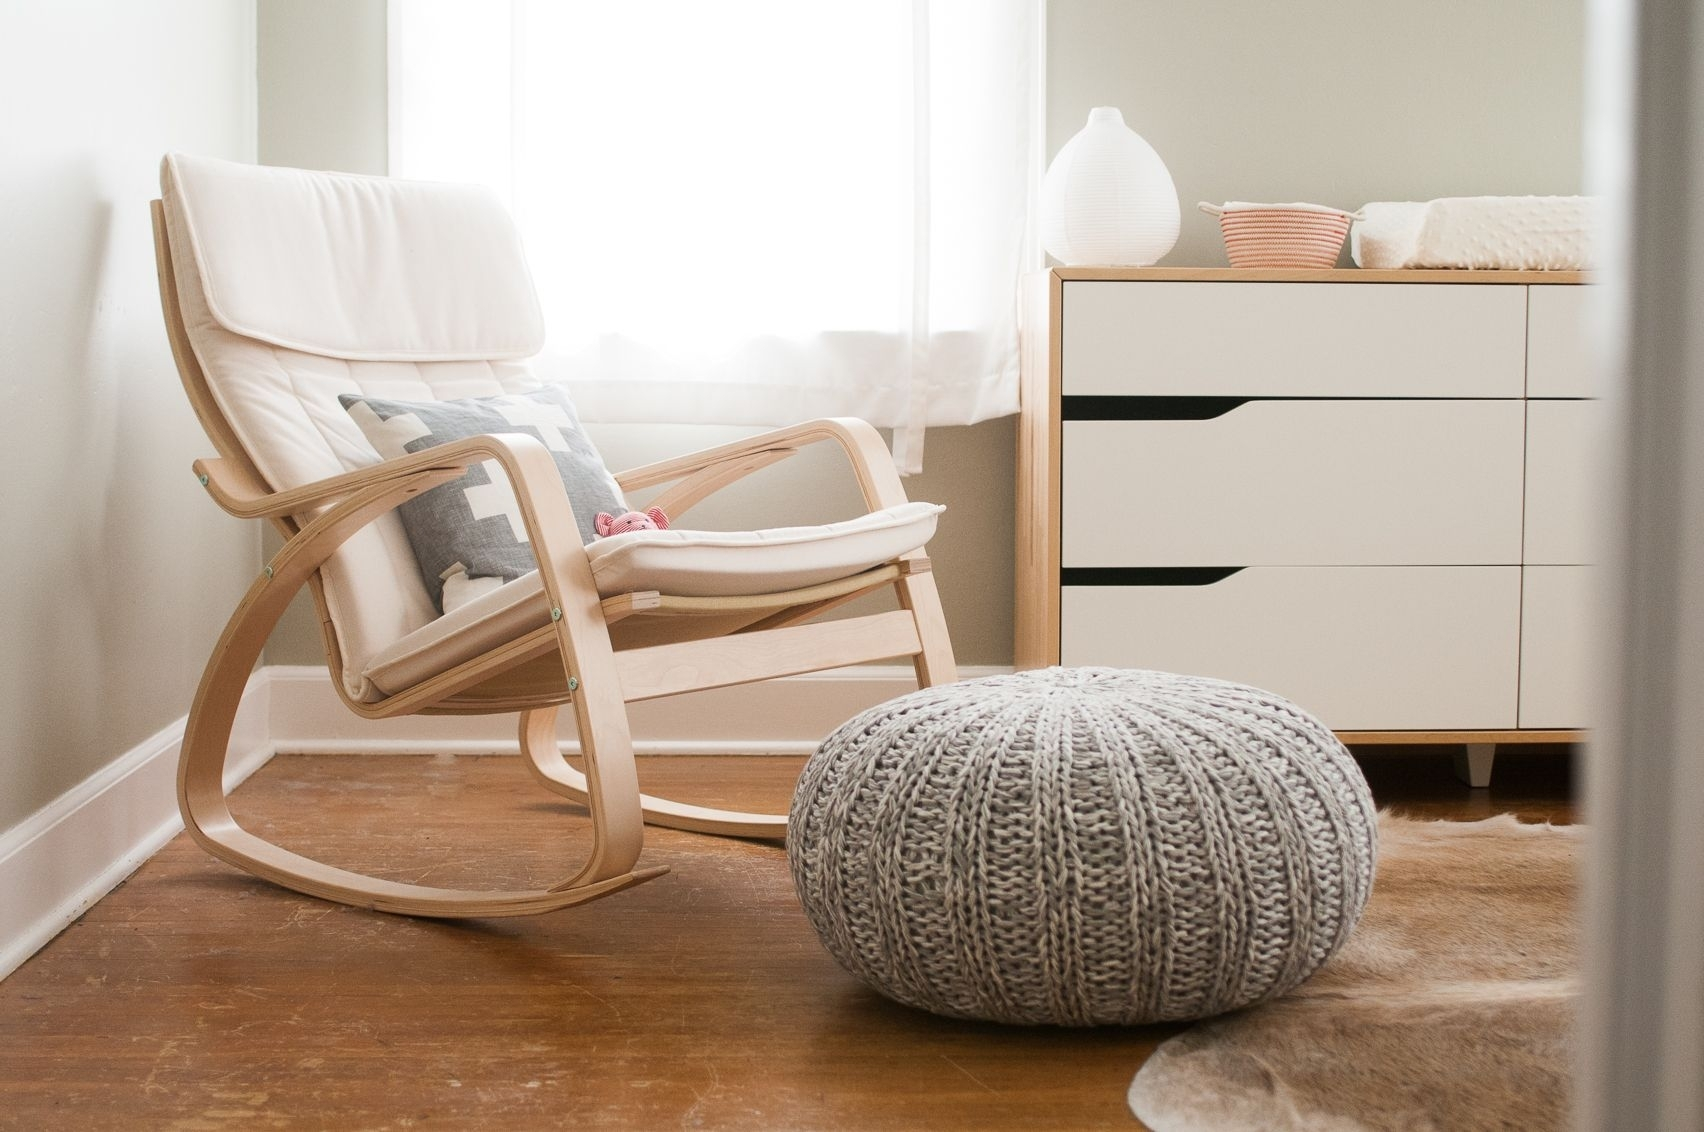 Ikea Poang Rocking Chair For Gray And White Nursery | Colin's Room Pertaining To Rocking Chairs At Ikea (#5 of 15)